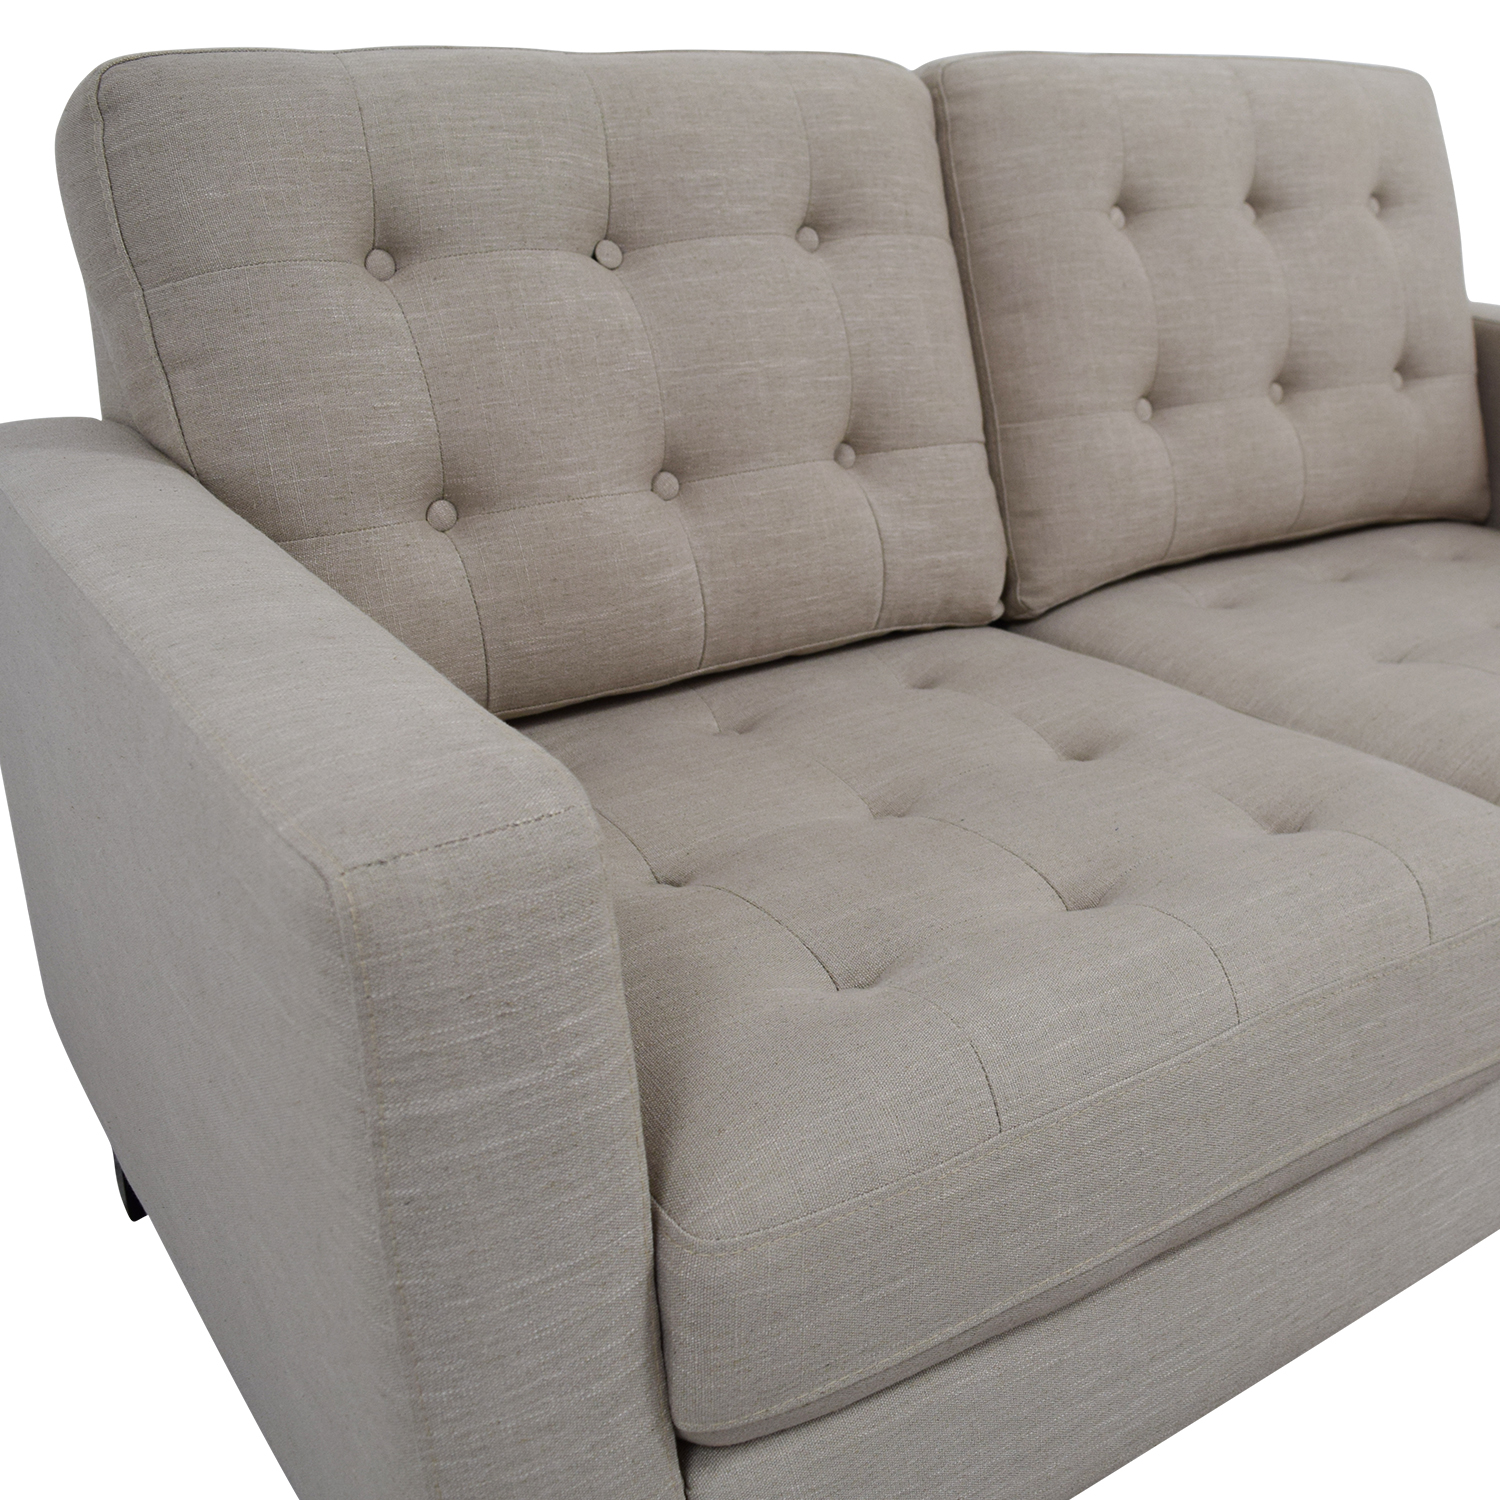 Pier 1 Imports Pier 1 Imports Nyle Putty Tufted Loveseat discount